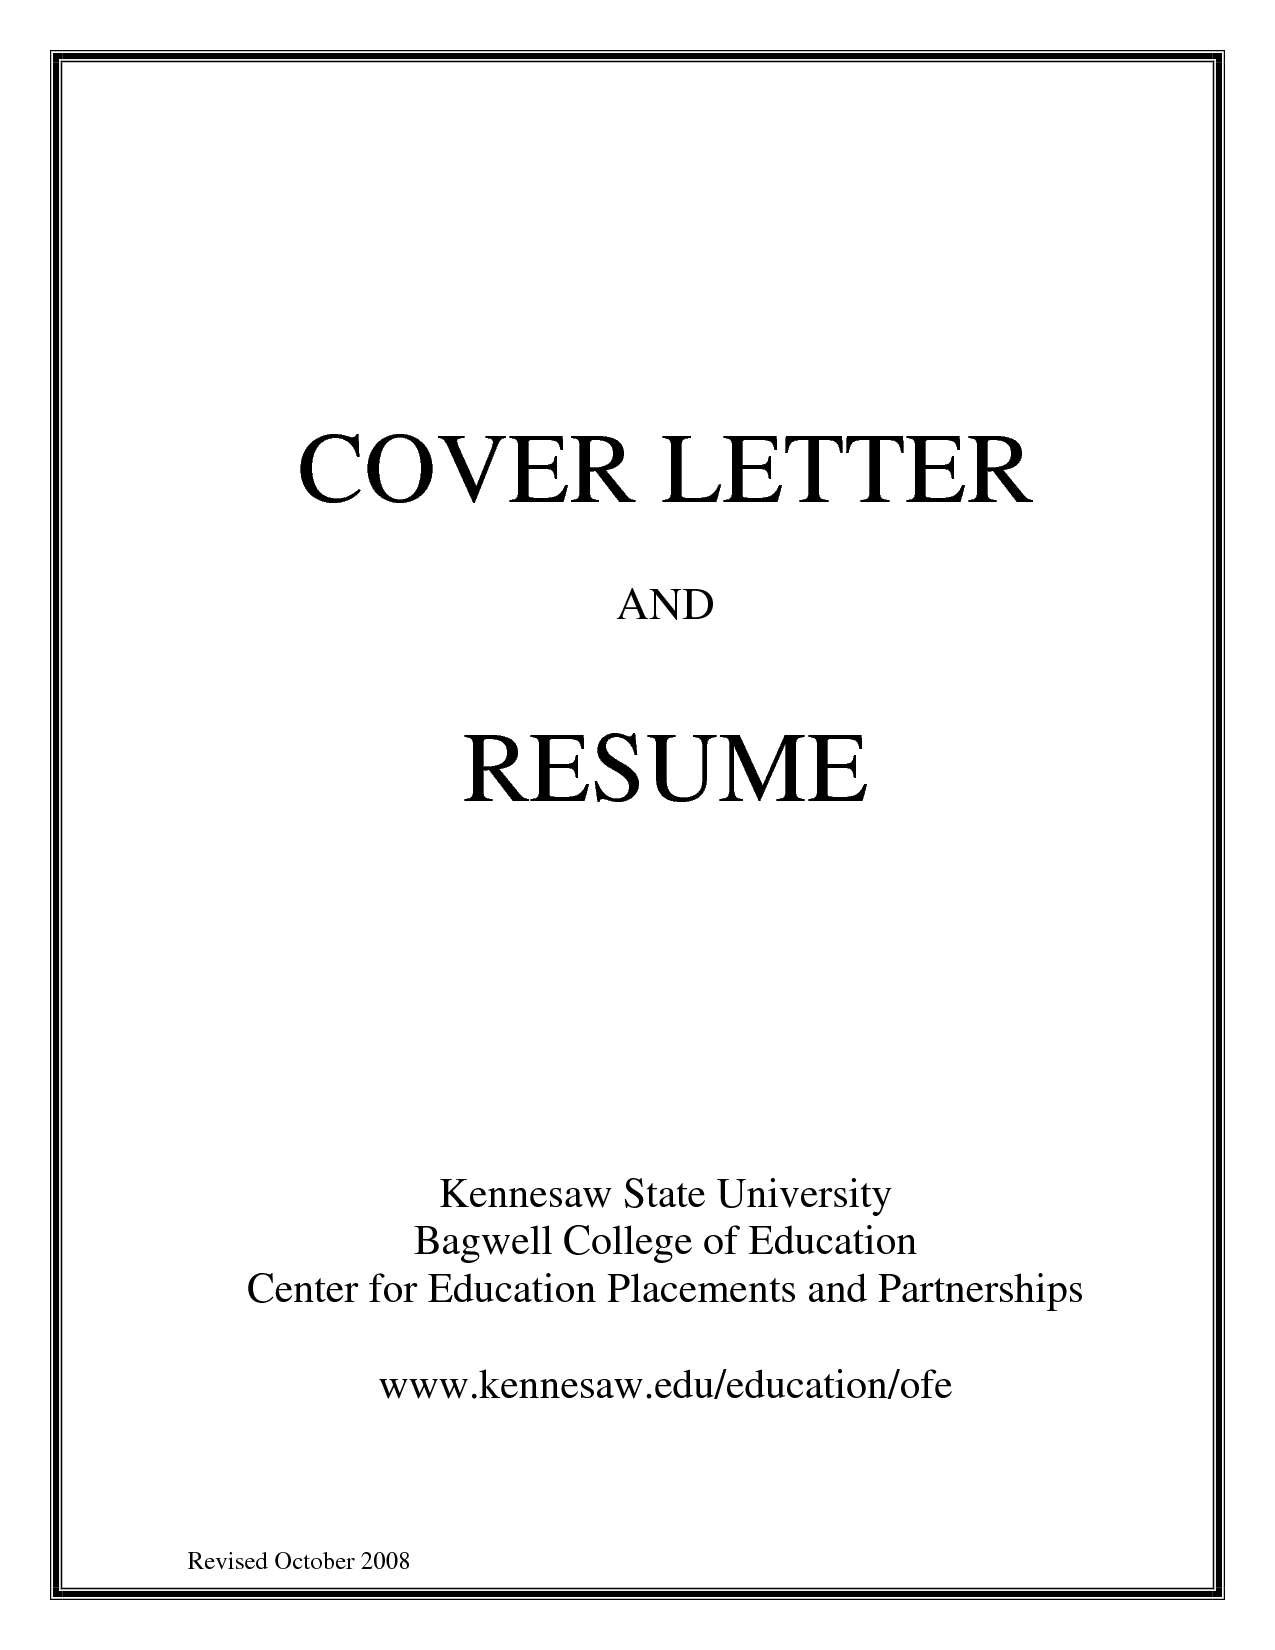 Resume Title Page Example - Examples of Resumes